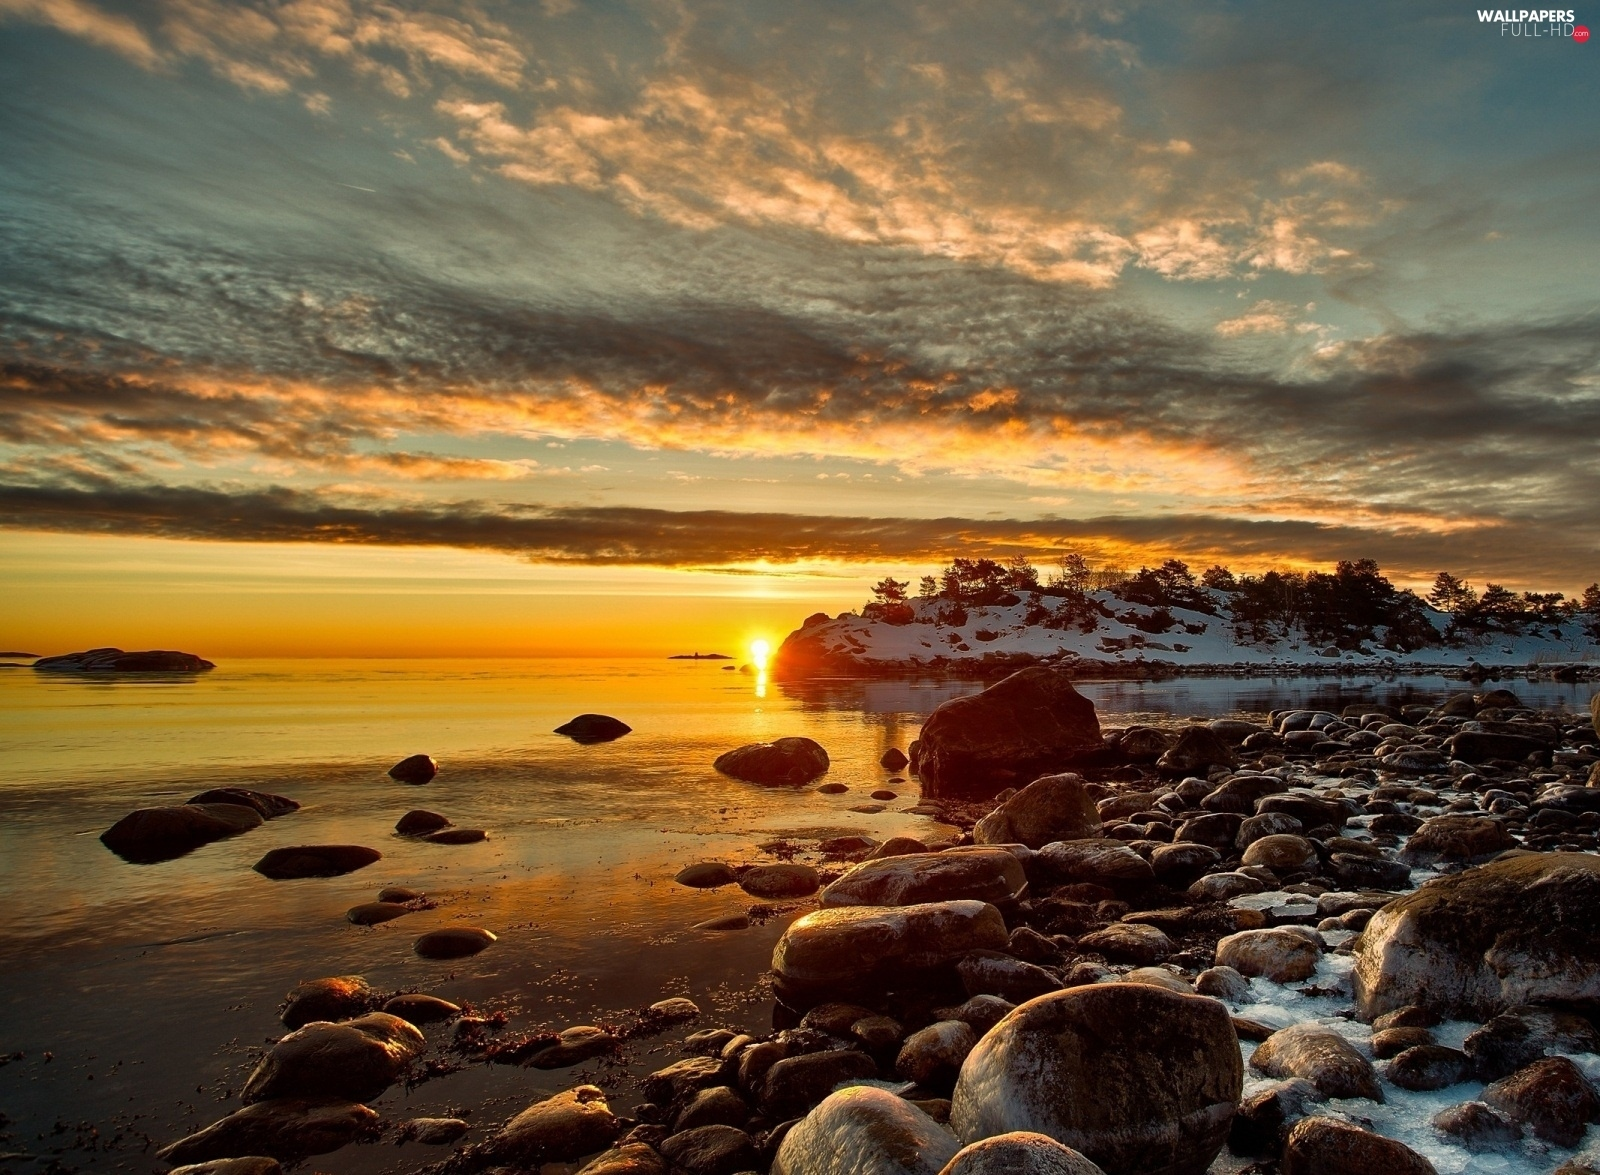 Great Sunsets, snow, lake, Stones